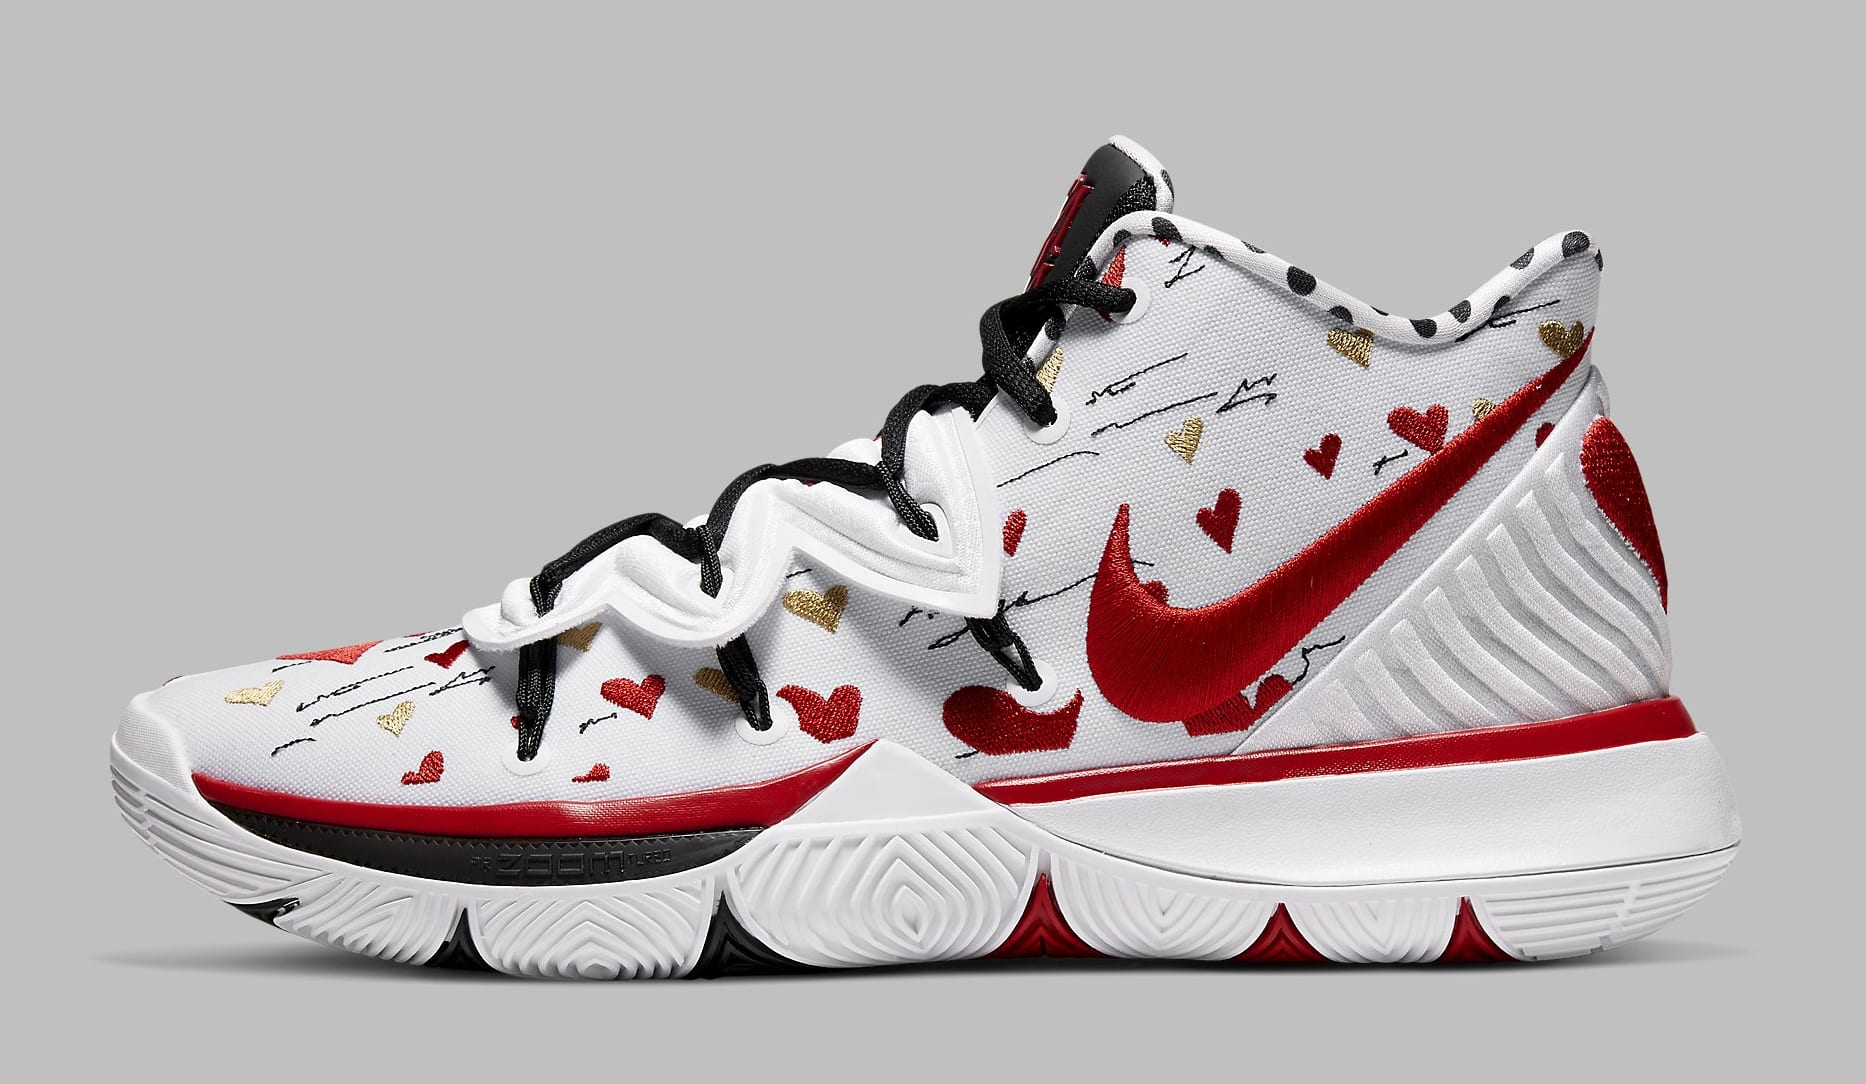 sneaker-room-nike-kyrie-5-mom-cu0677-100-lateral